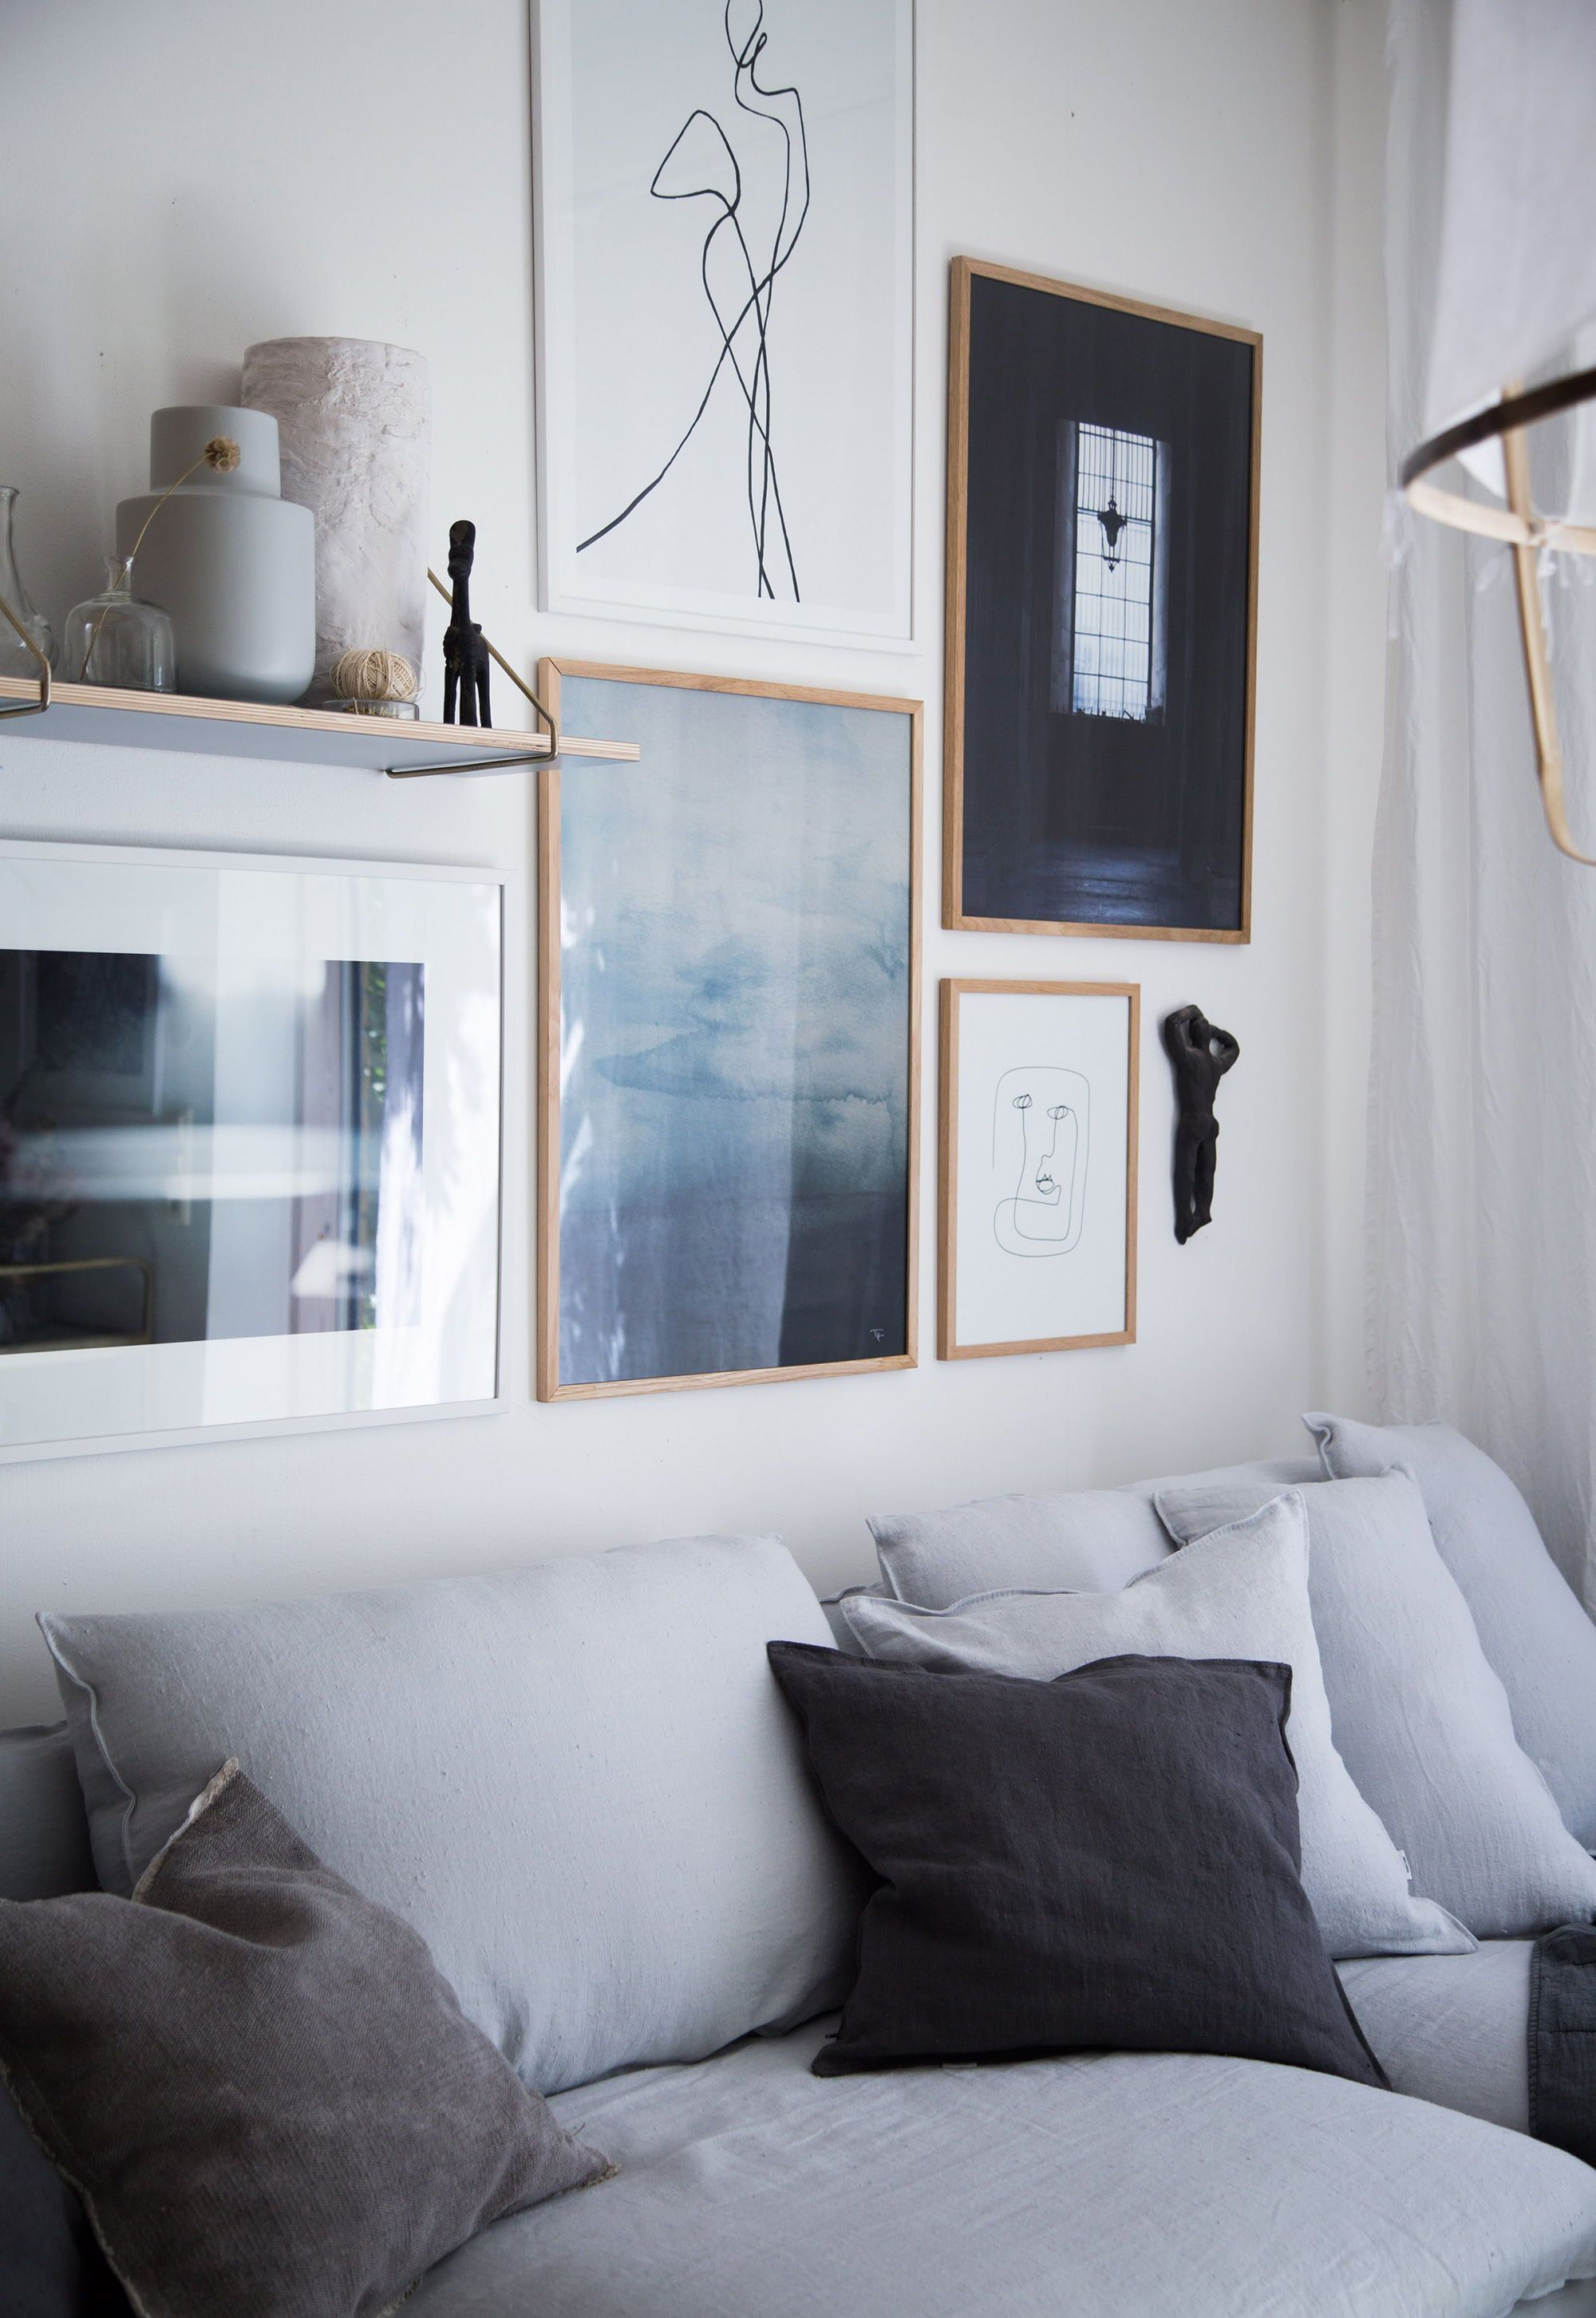 urban sofa gallery wooden cushions in chennai soderhamn 3 seater section loose fit home design diy tips chic wall a blue and white colour scheme light grey linen the of my scandinavian ikea with bemz